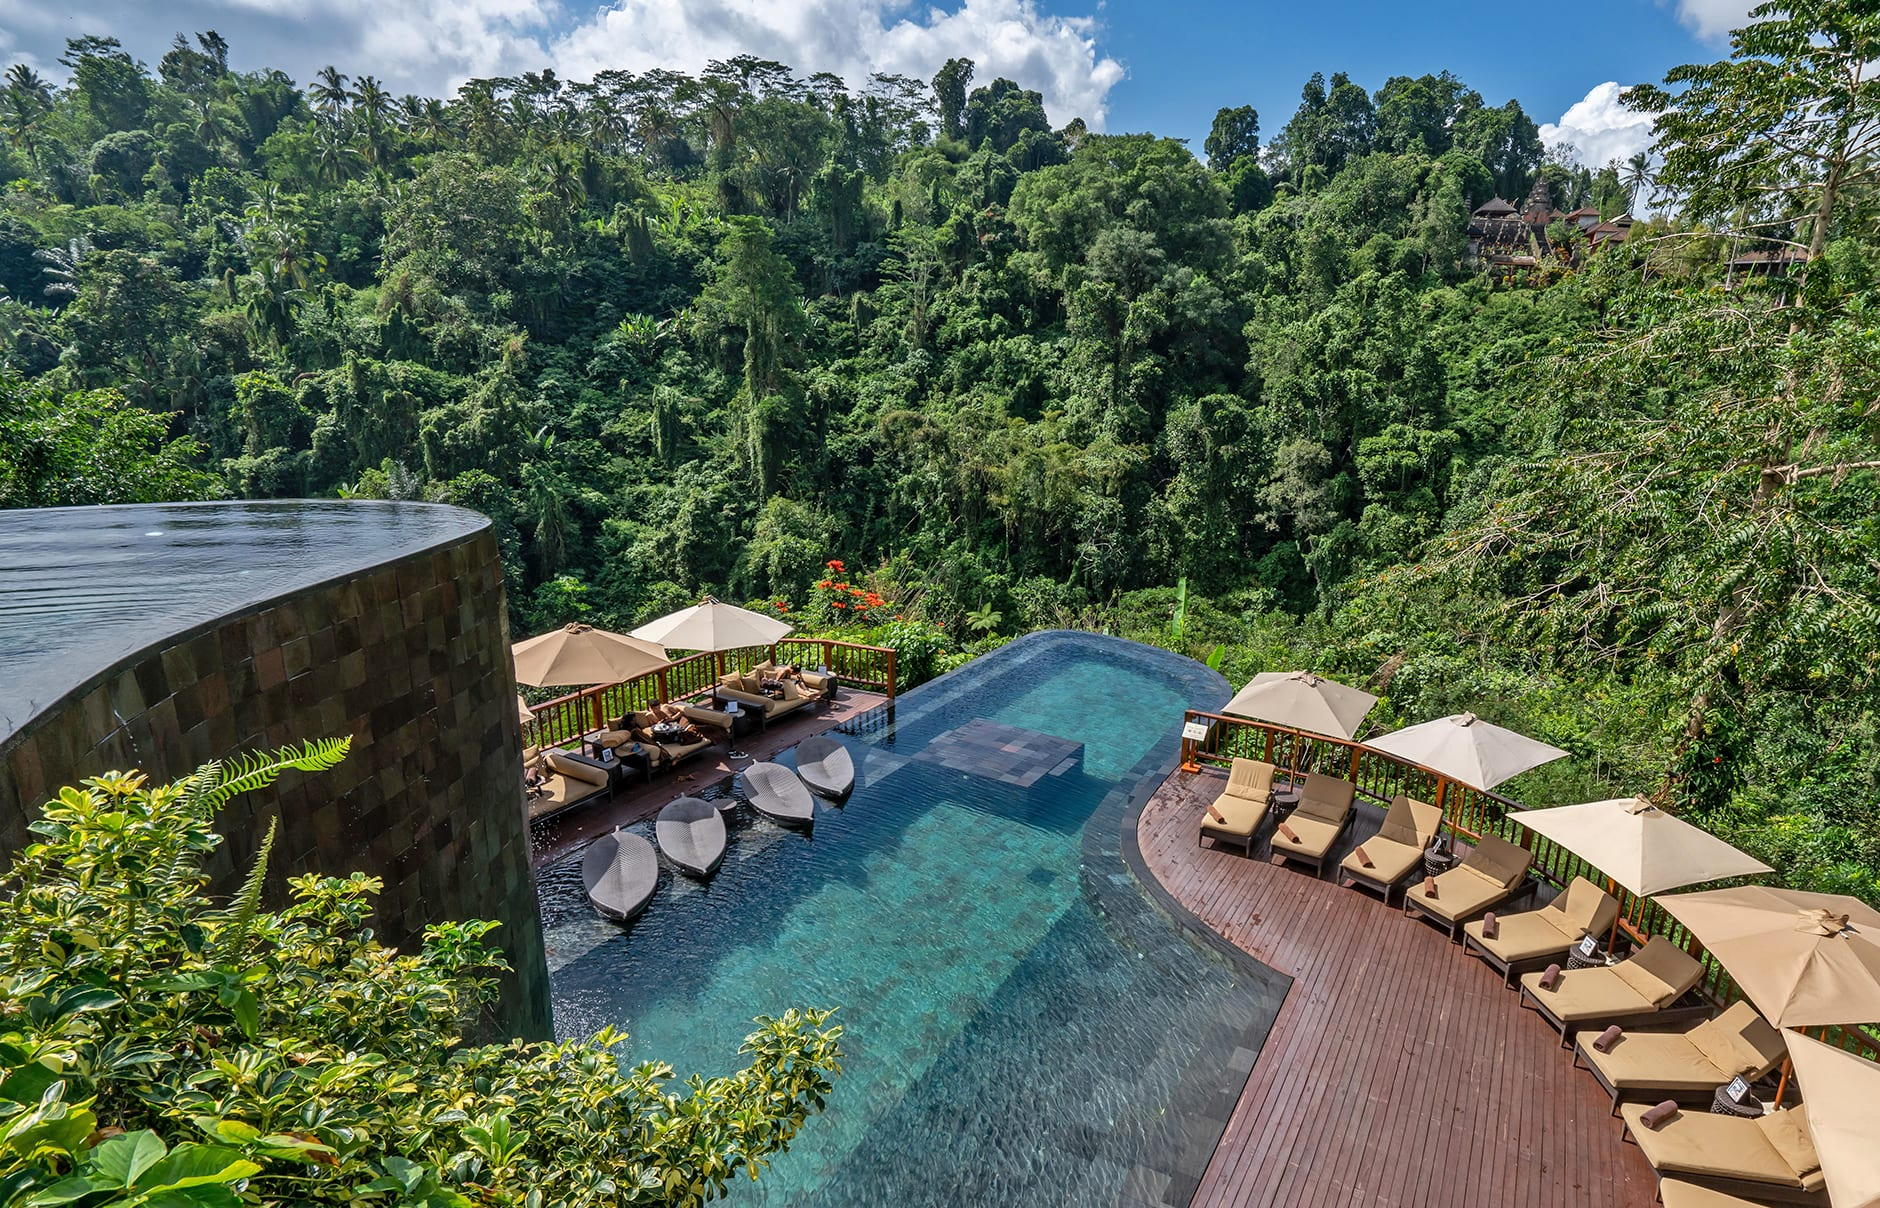 Hanging Gardens of Bali, Ubud, Bali, Indonesia. Hotel Review by TravelPlusStyle. Photo © Hanging Gardens of Bali